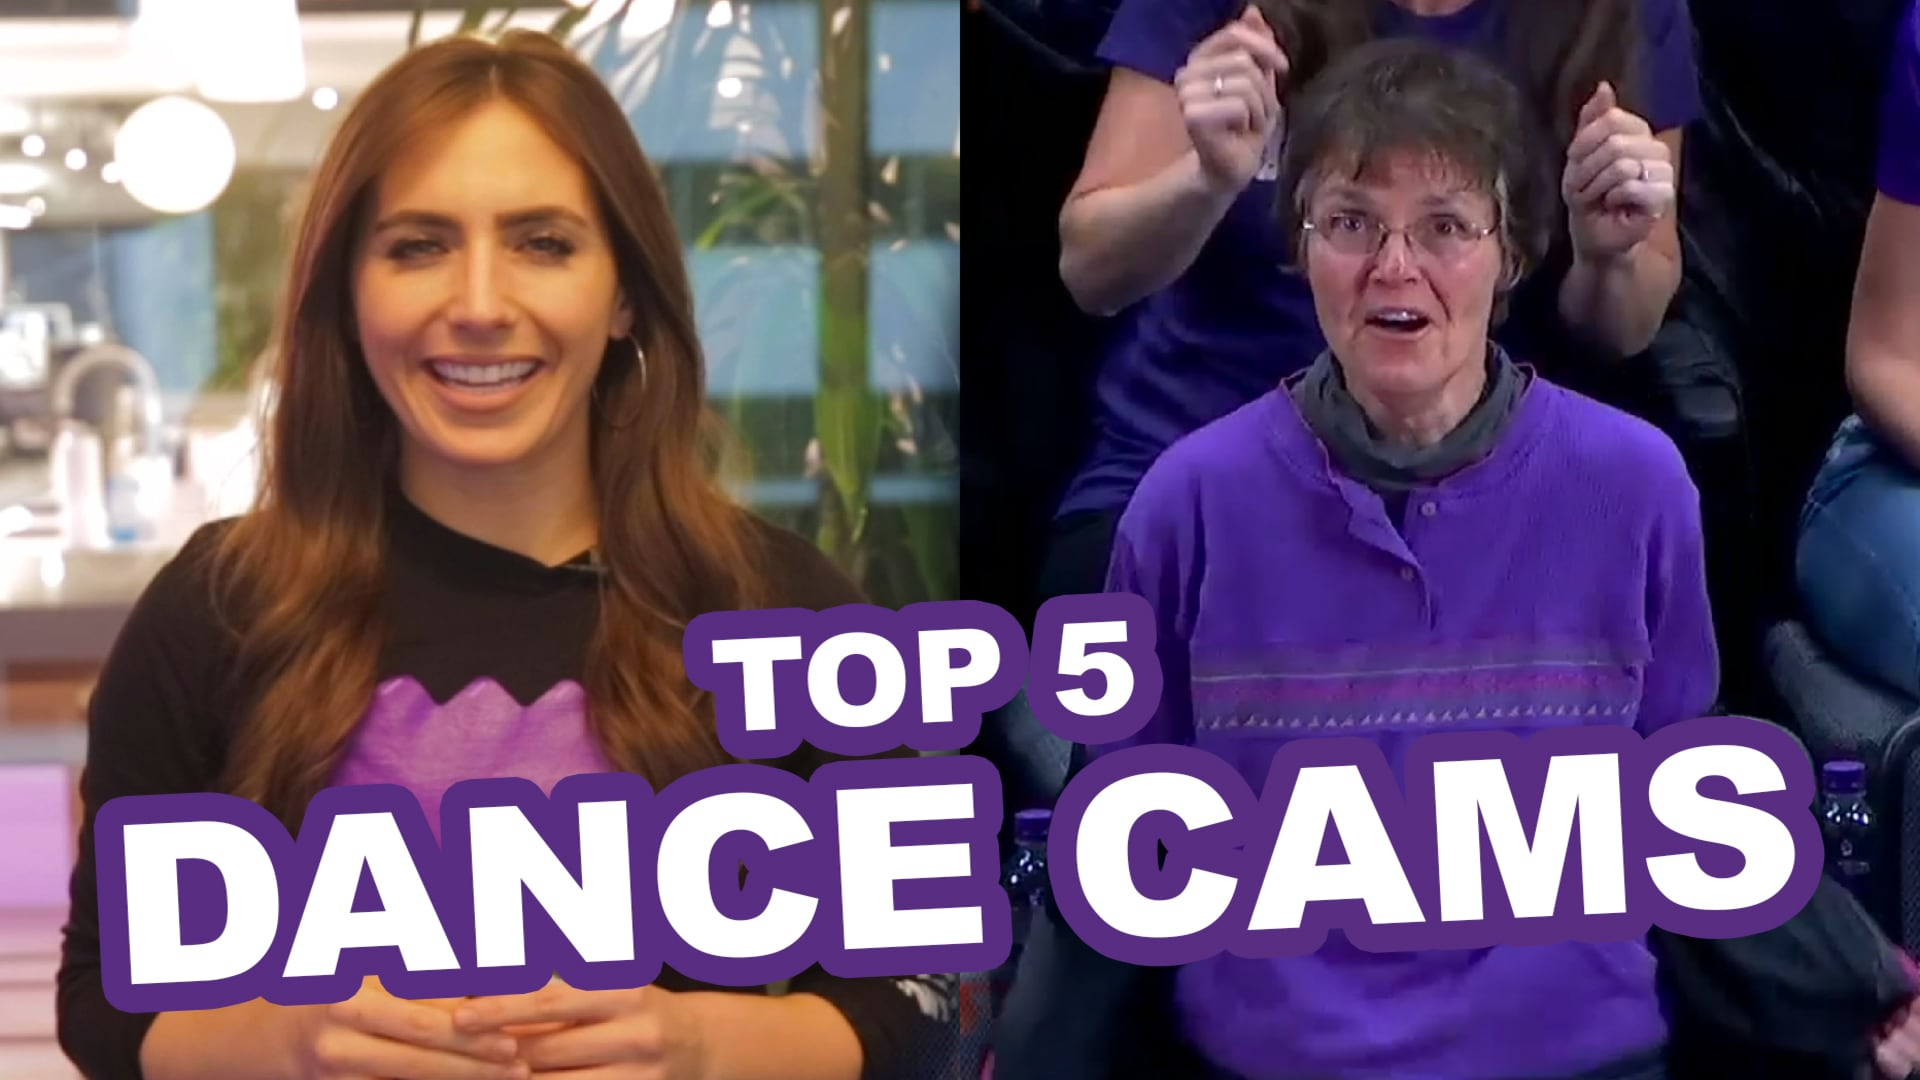 Top 5 Dance Cams in Kings History